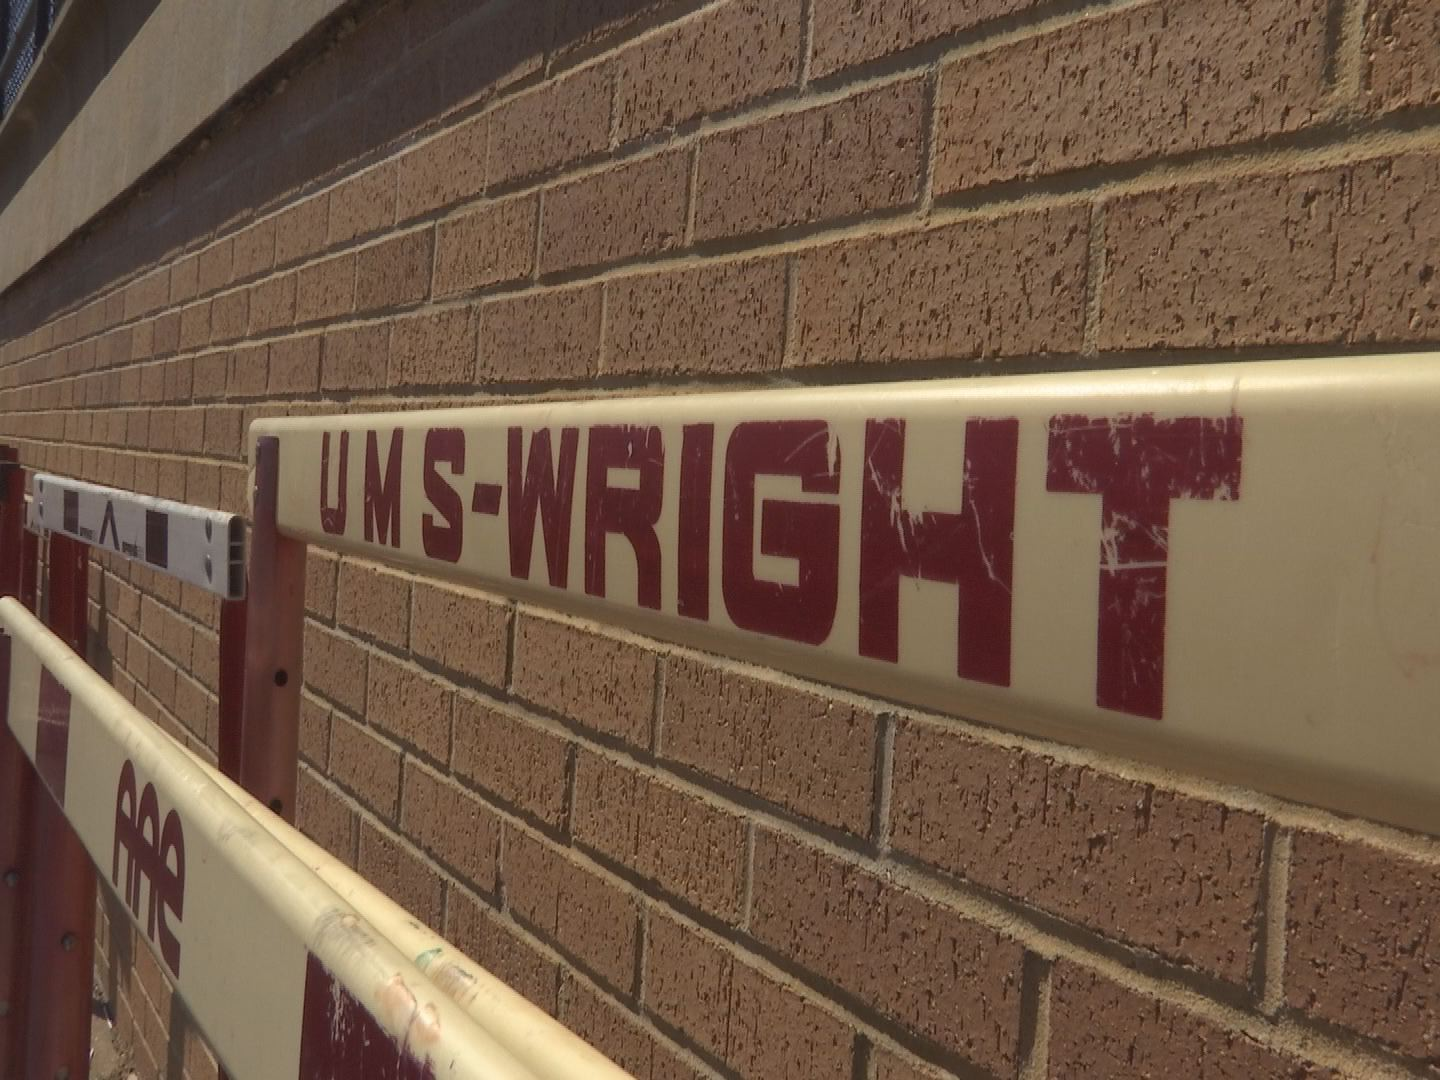 UMS-Wright Track and Field